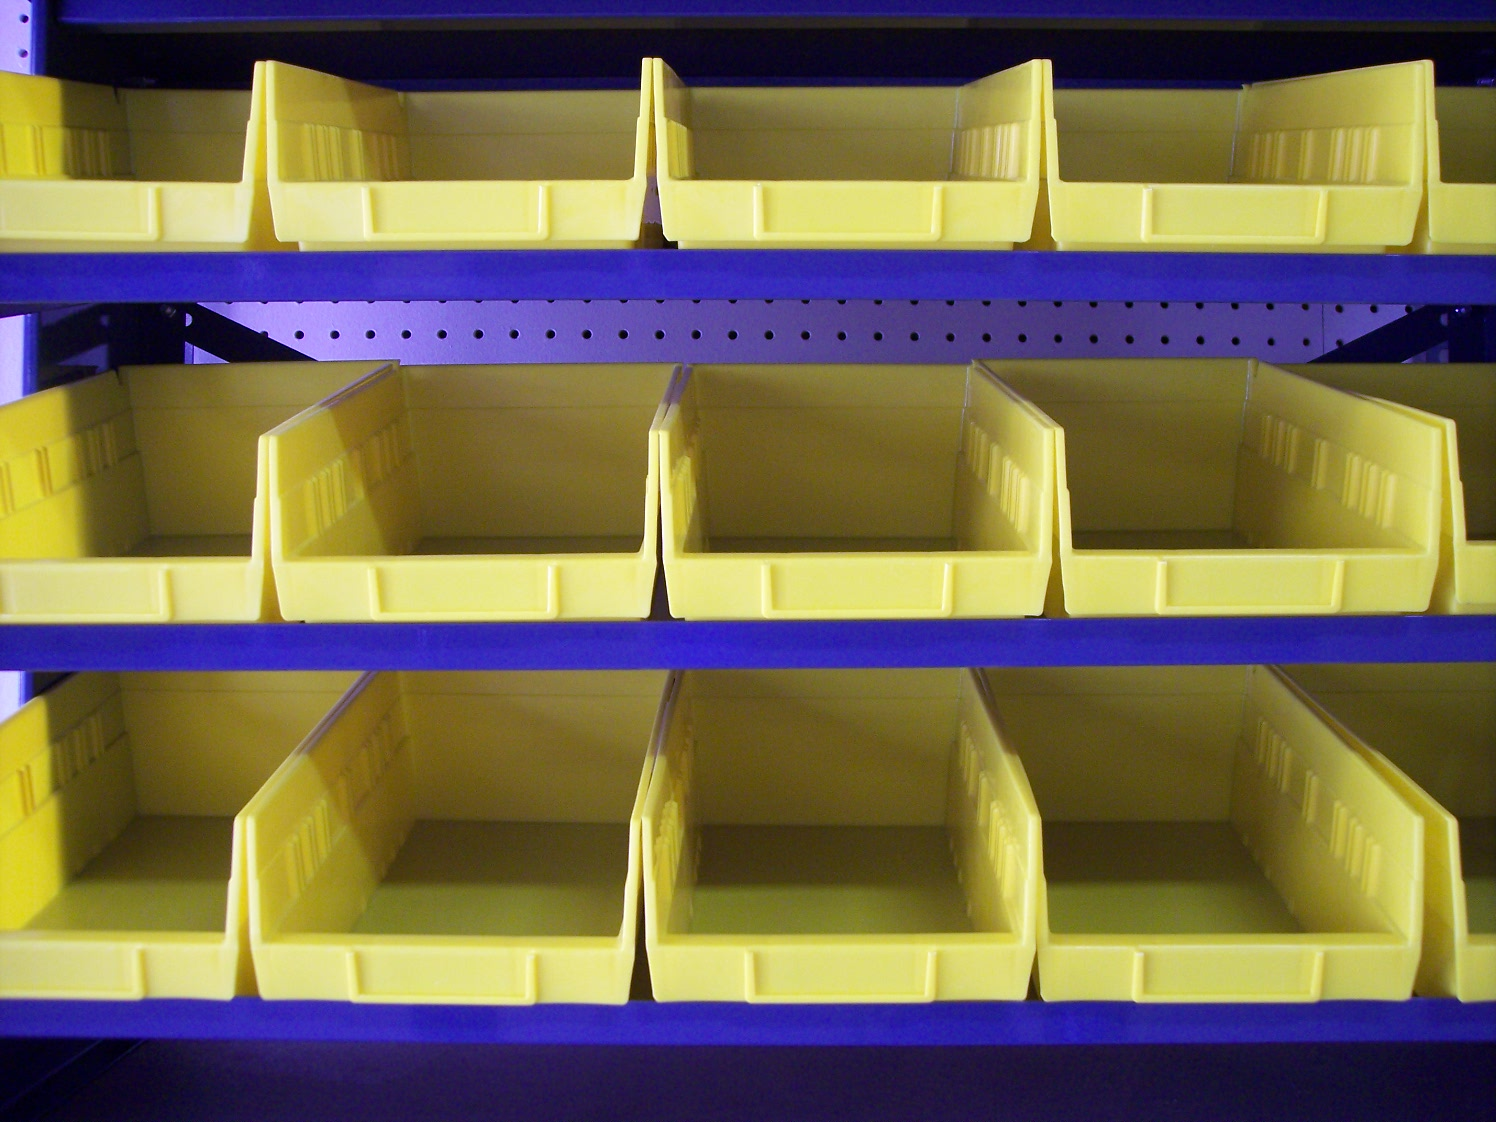 Finger ... & Stackable Plastic Bins | All American Rack Company Warehouse Pallet ...